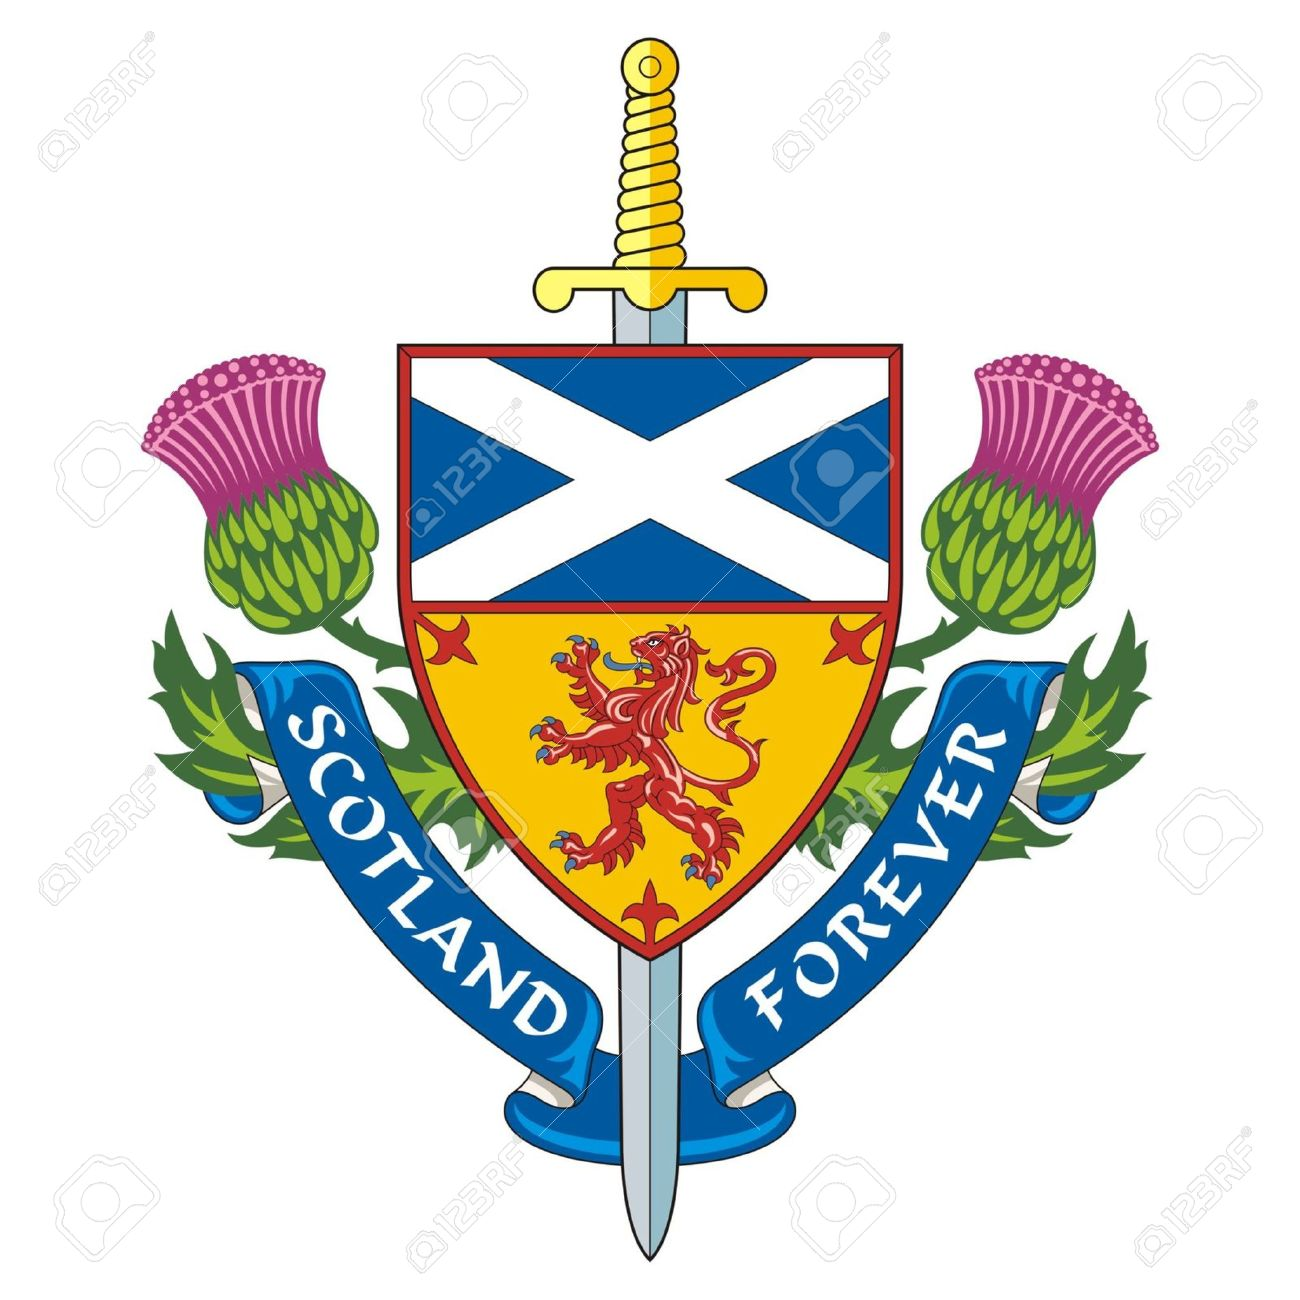 Scotland forever symbol of scotland vector royalty free cliparts scotland forever symbol of scotland vector stock vector 24805612 buycottarizona Image collections